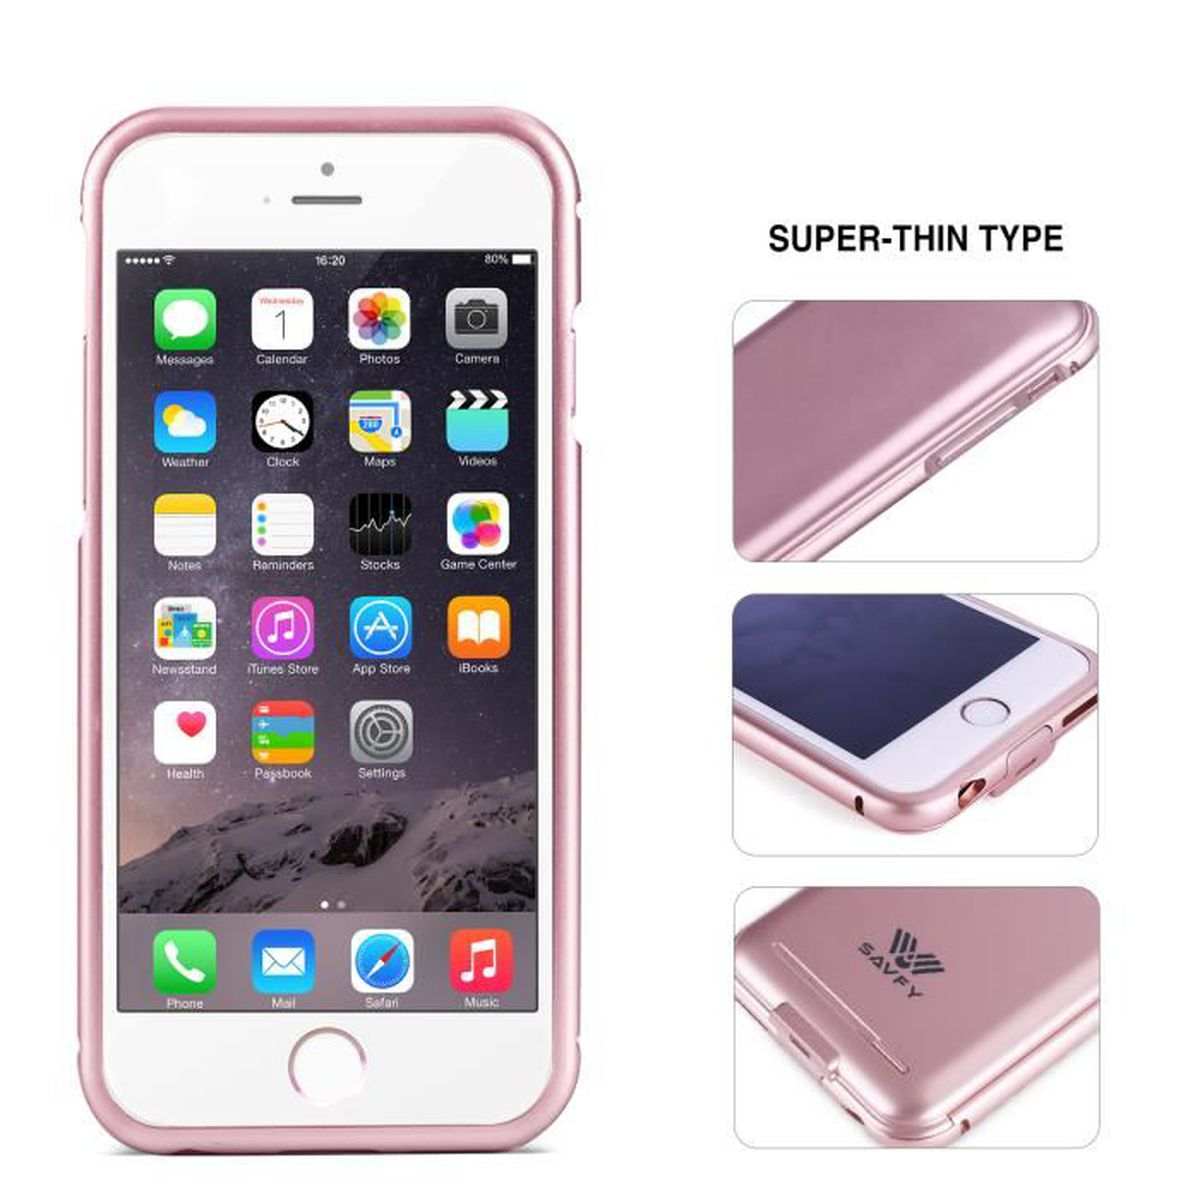 savfy ultra slim coque batterie 2200mah rechargeable pour iphone 6s 6 rose achat coque. Black Bedroom Furniture Sets. Home Design Ideas